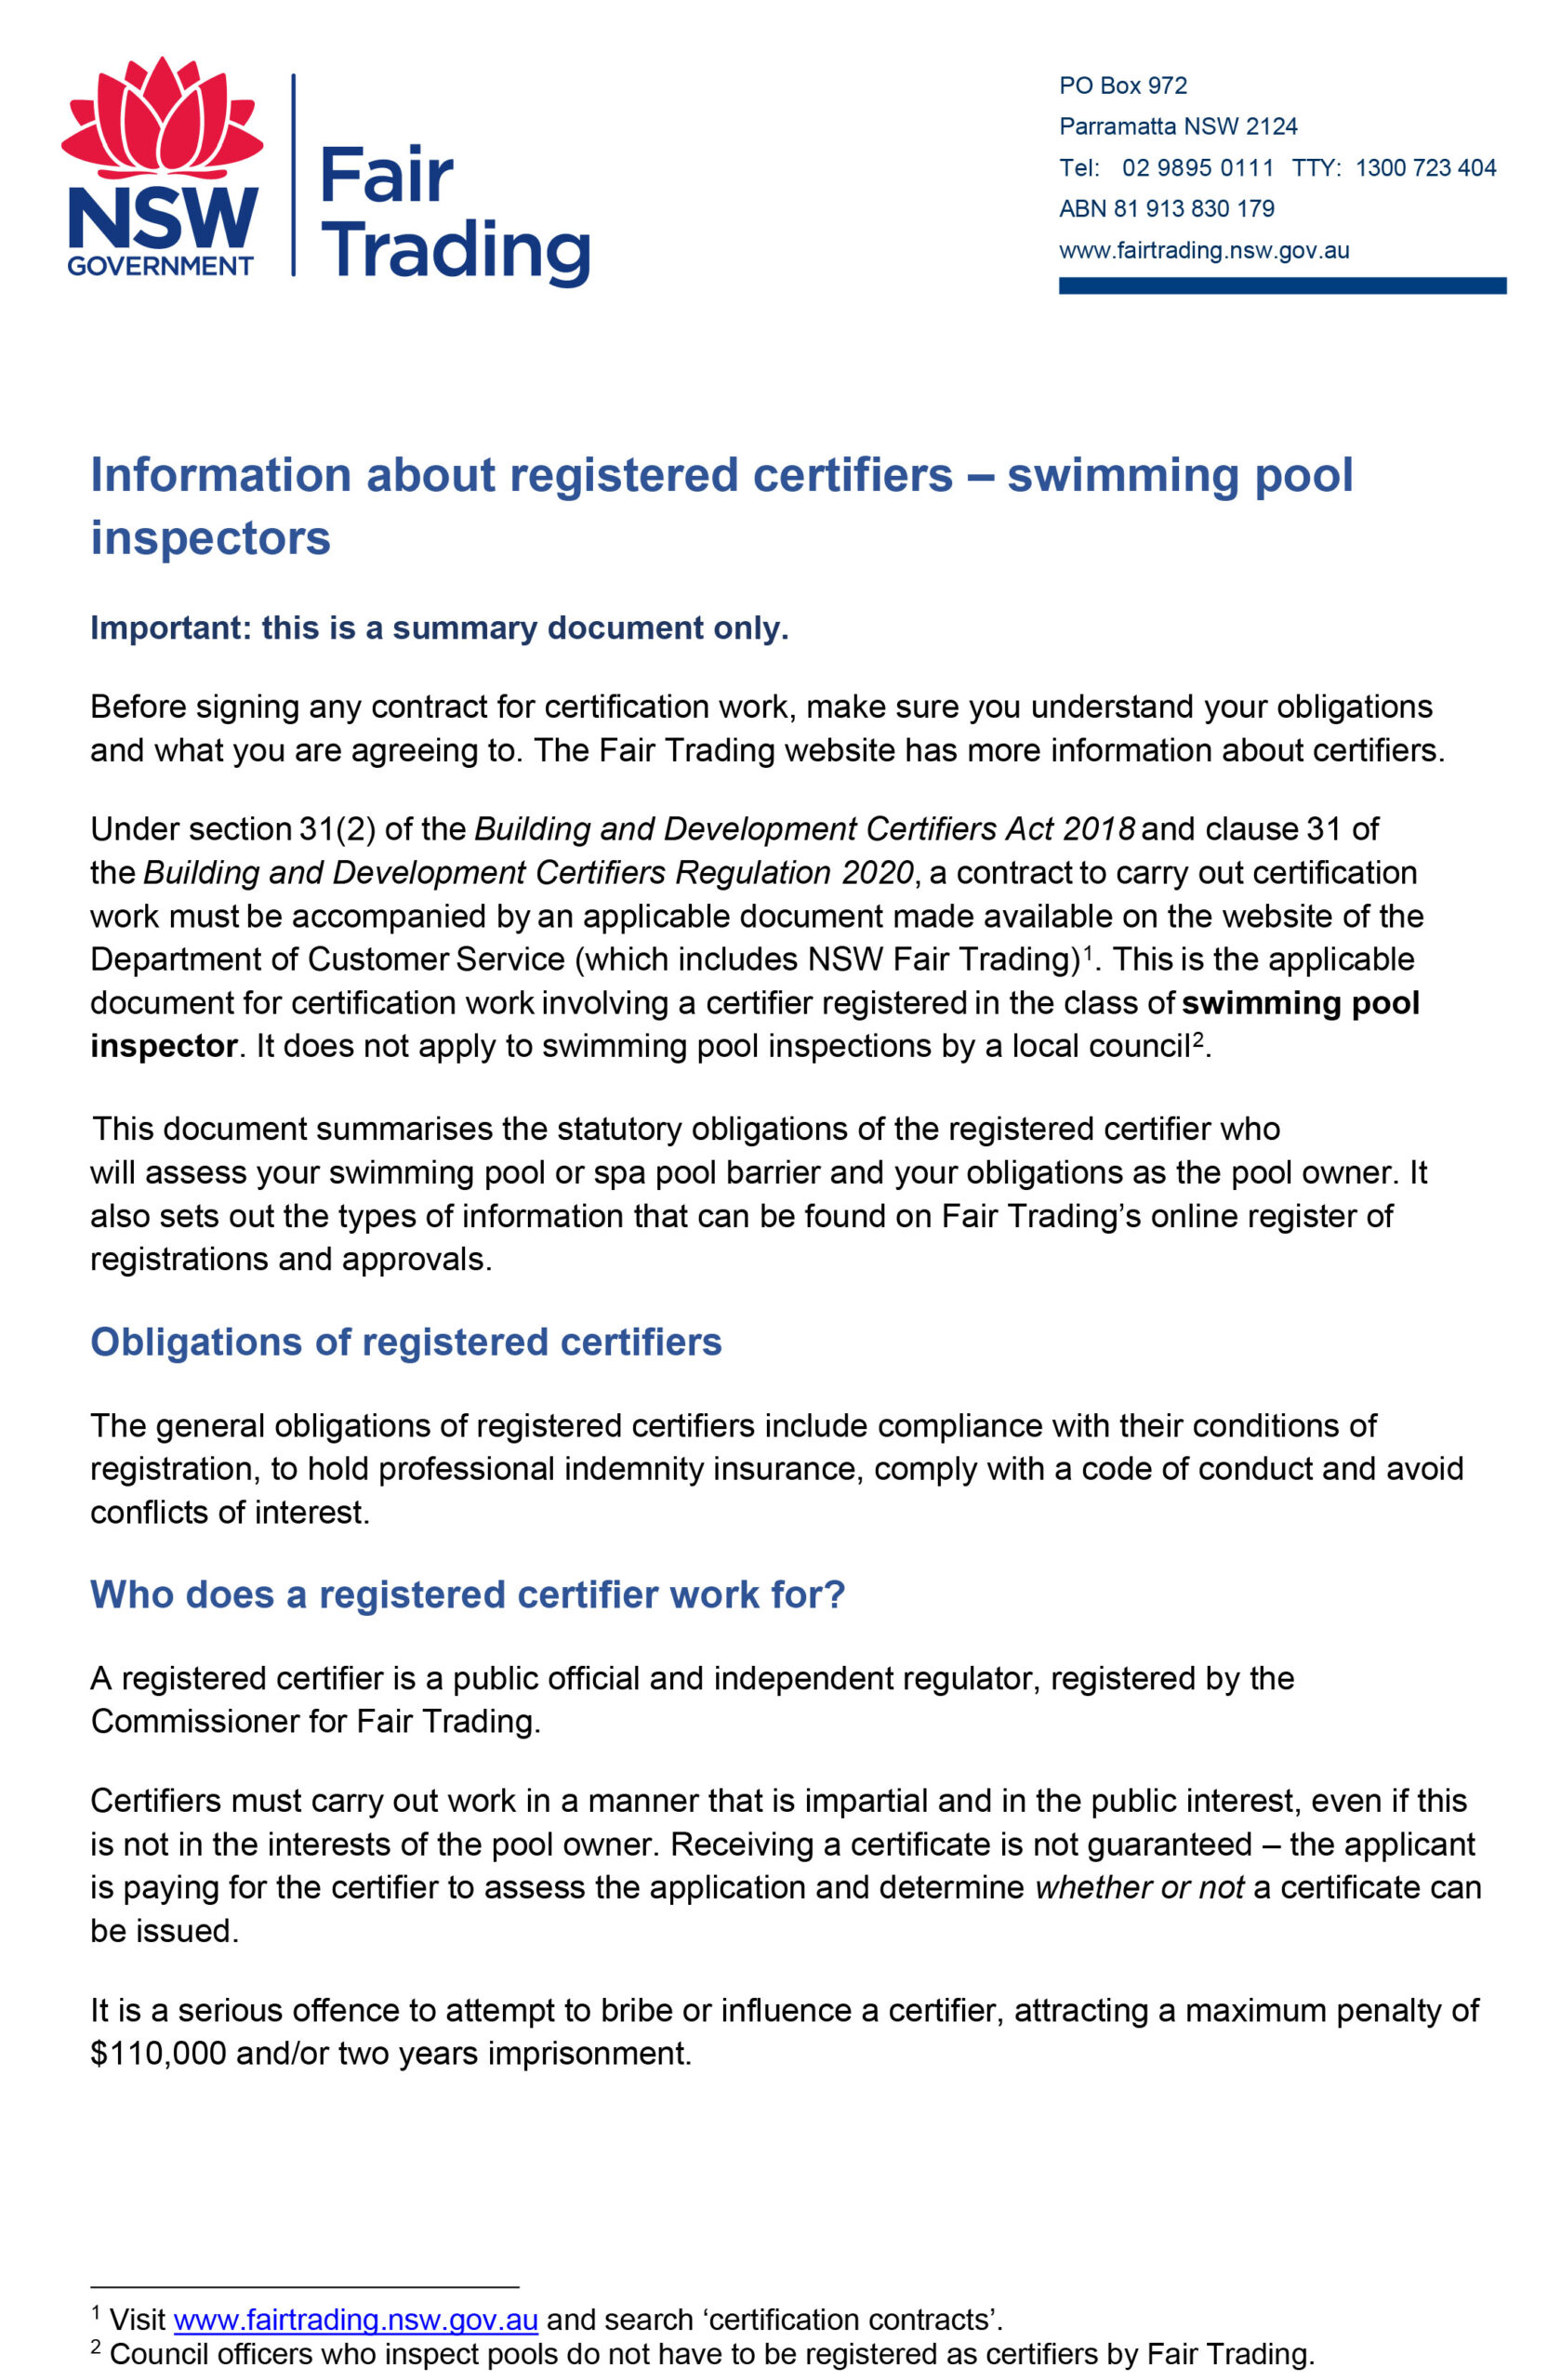 BDCAct-contract-attachment-Oct-2020-swimming-pool-inspectors-1